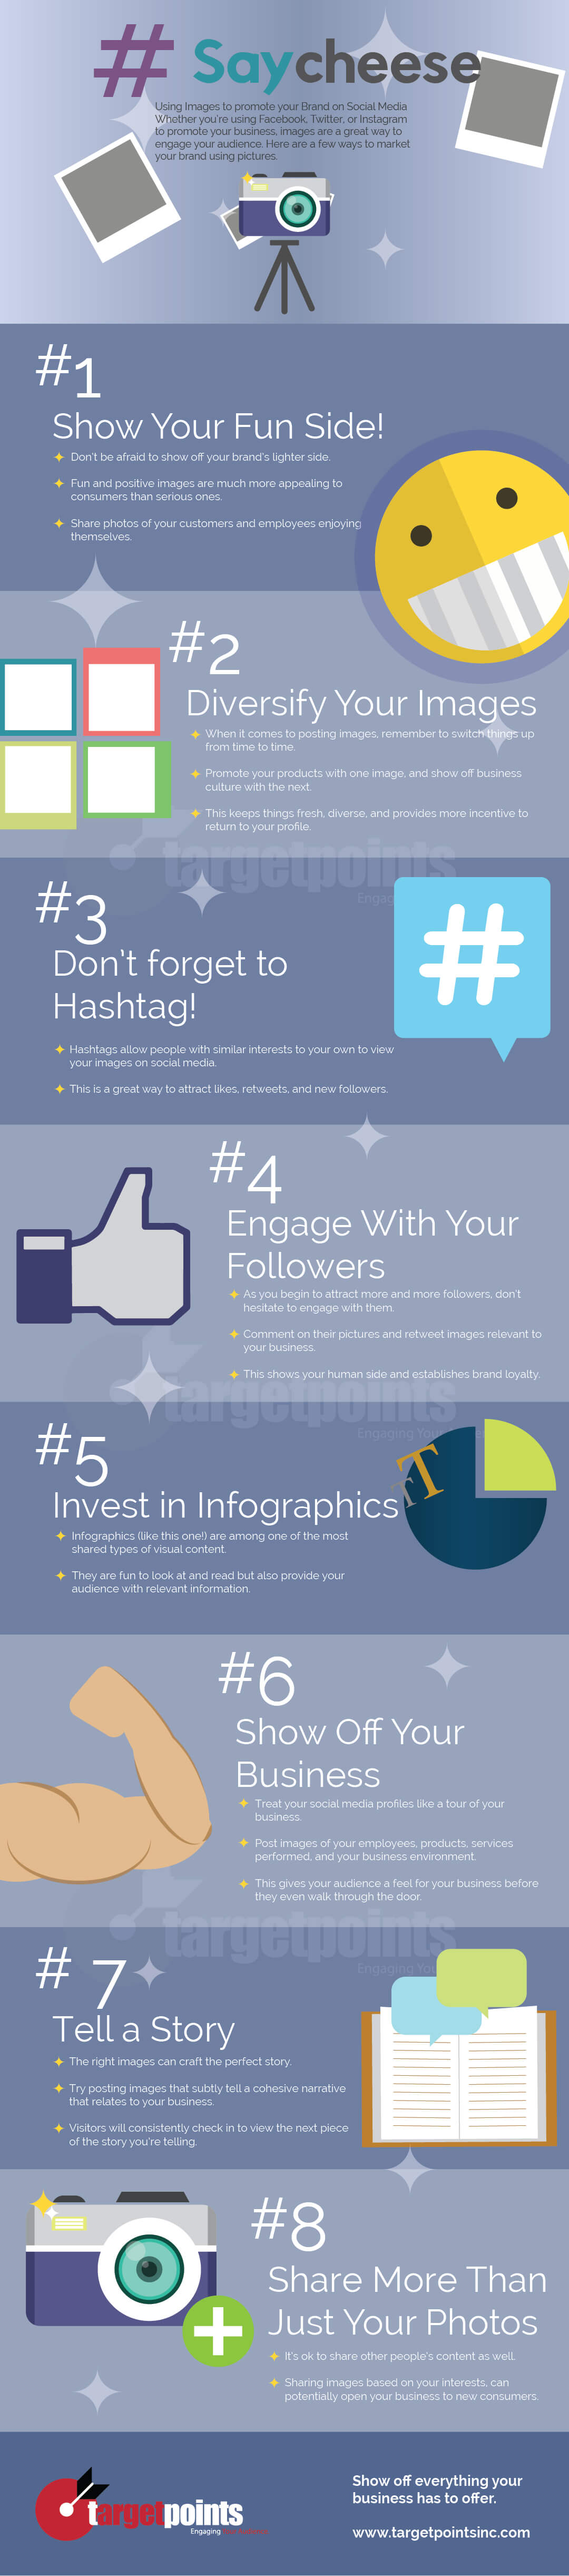 Using images to promote your brand on social media